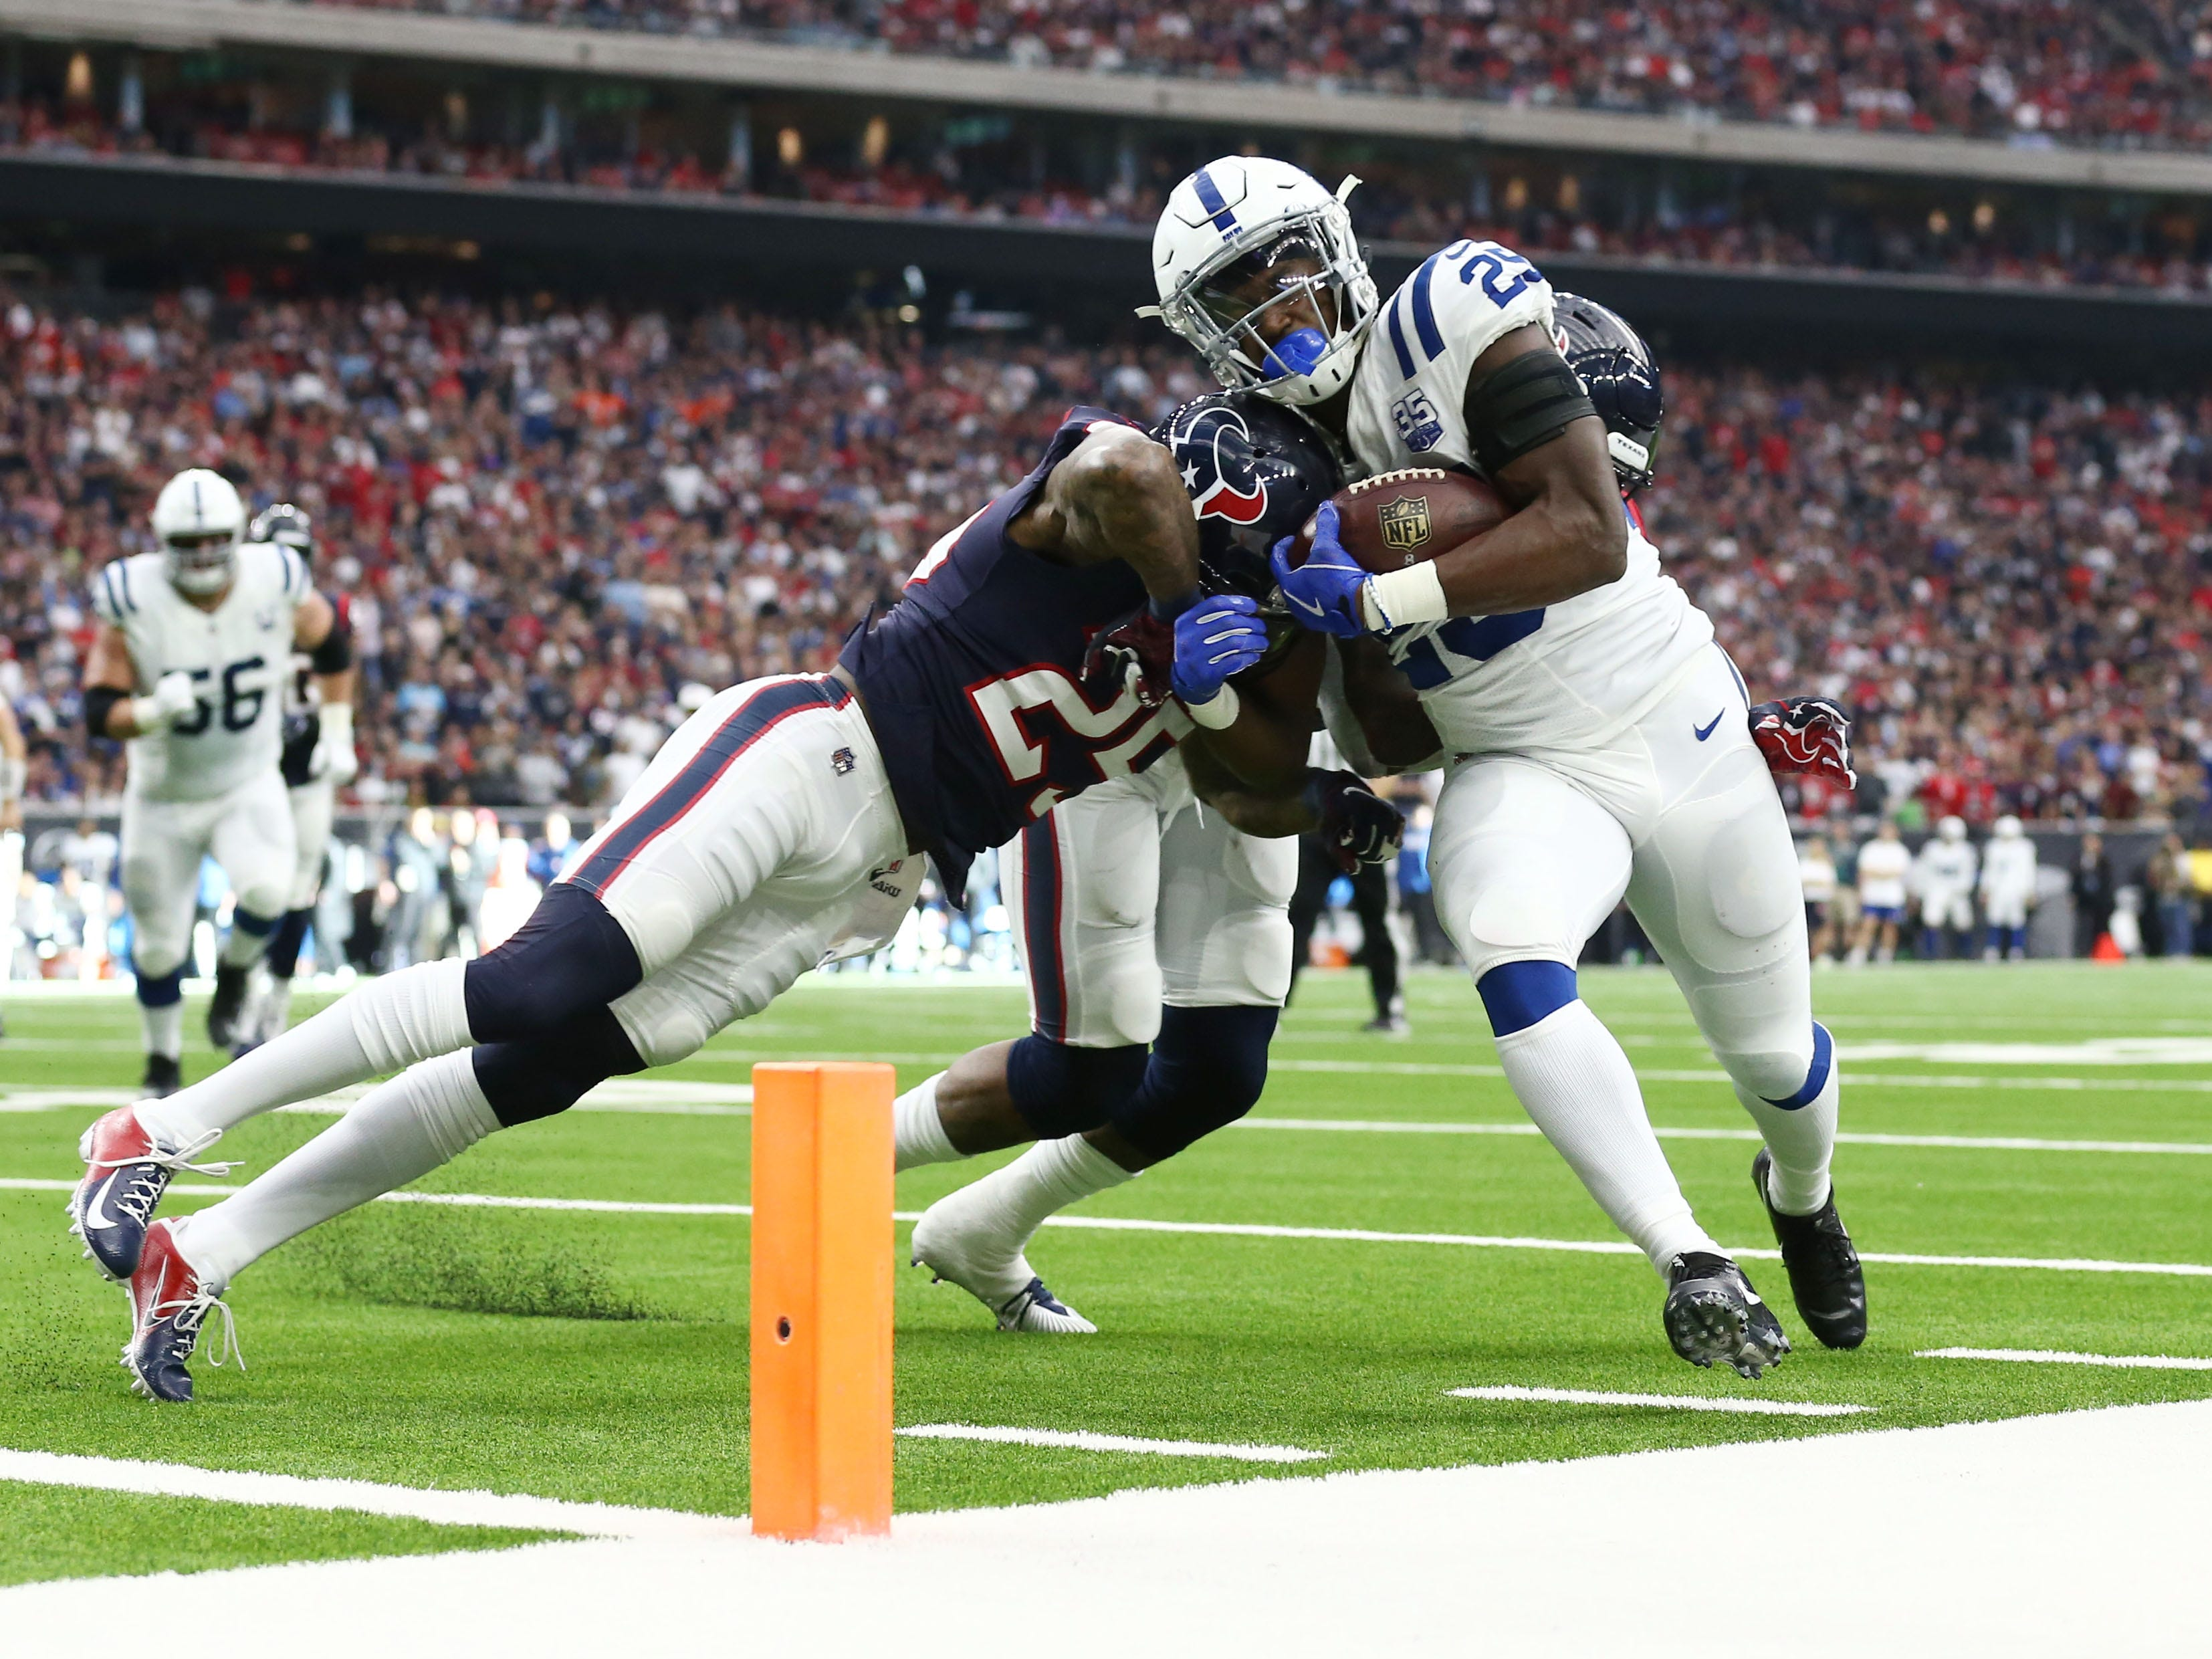 Indianapolis Colts running back Marlon Mack (25) is pushed out of bounds by Houston Texans strong safety Kareem Jackson (25) and inside linebacker Benardrick McKinney (55) in the first quarter in a AFC Wild Card playoff football game at NRG Stadium.